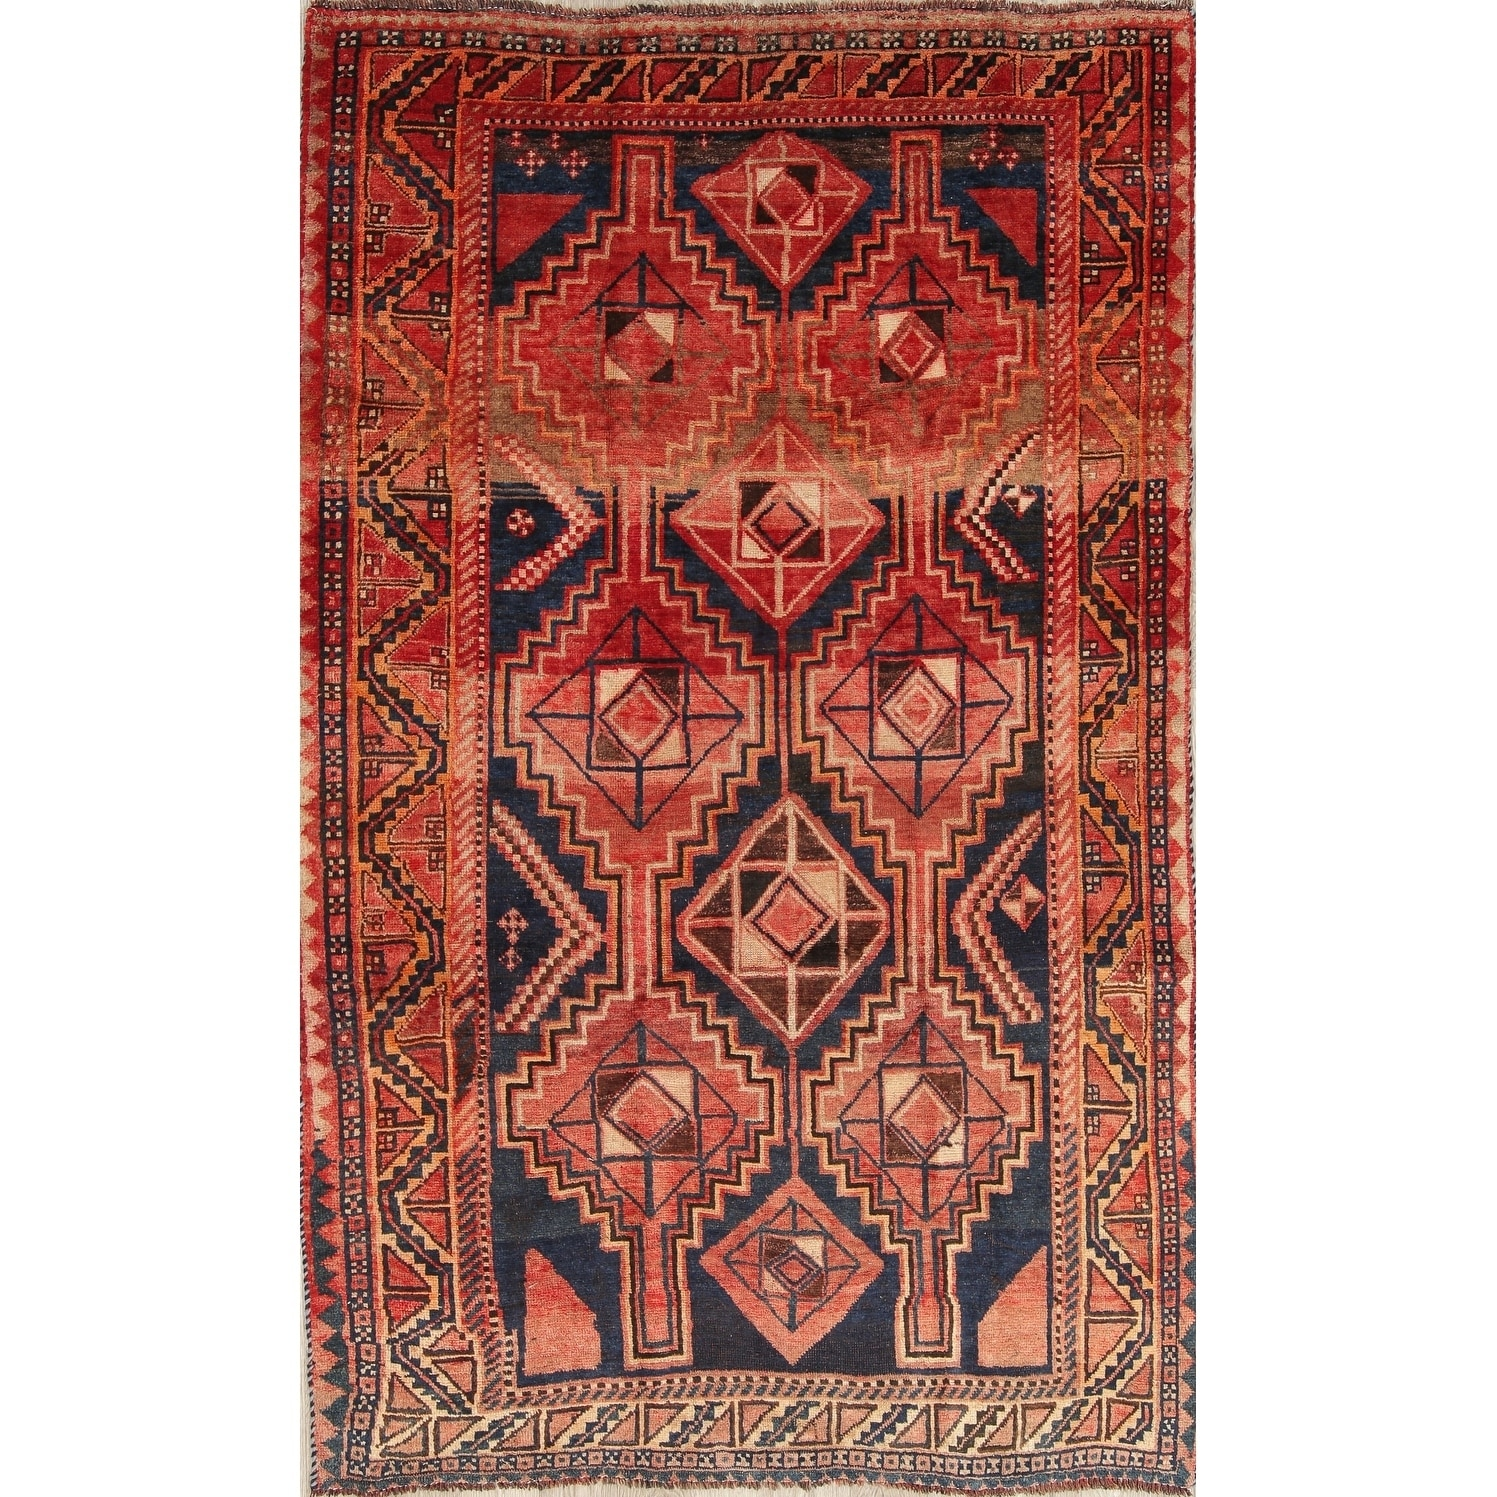 Antique Lori Geometric Hand Knotted Wool Persian Oriental Area Rug 8 10 X 5 4 On Sale Overstock 27700601